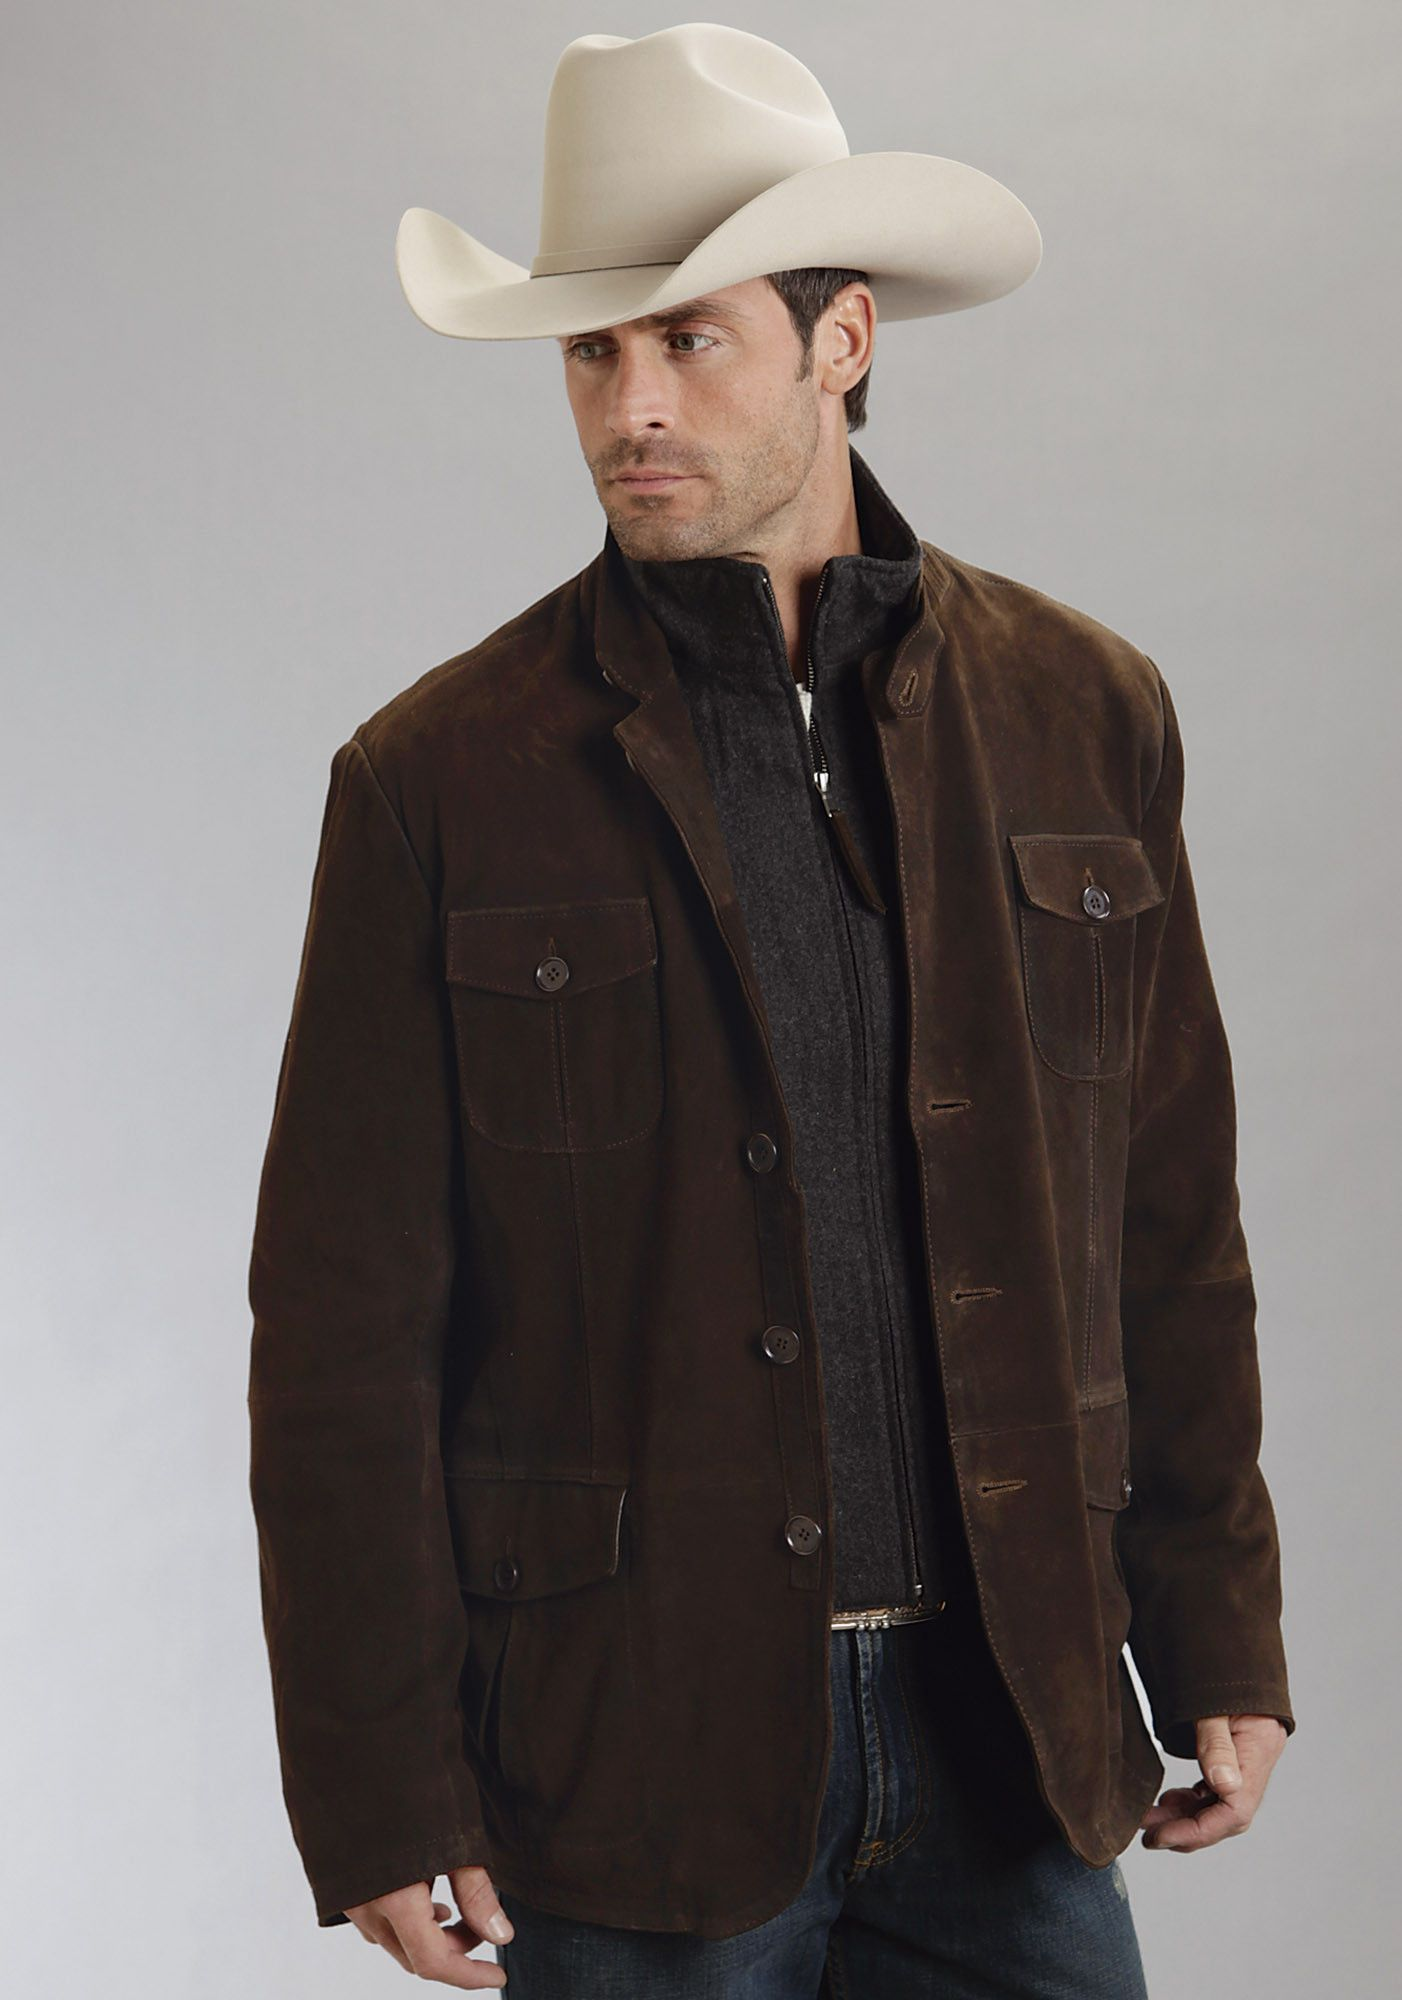 Stetson Mens Brown Lamb Suede Leather Jacket Wool Lined Button Suede Shirt Mens Western Wear Western Jacket [ 2000 x 1402 Pixel ]